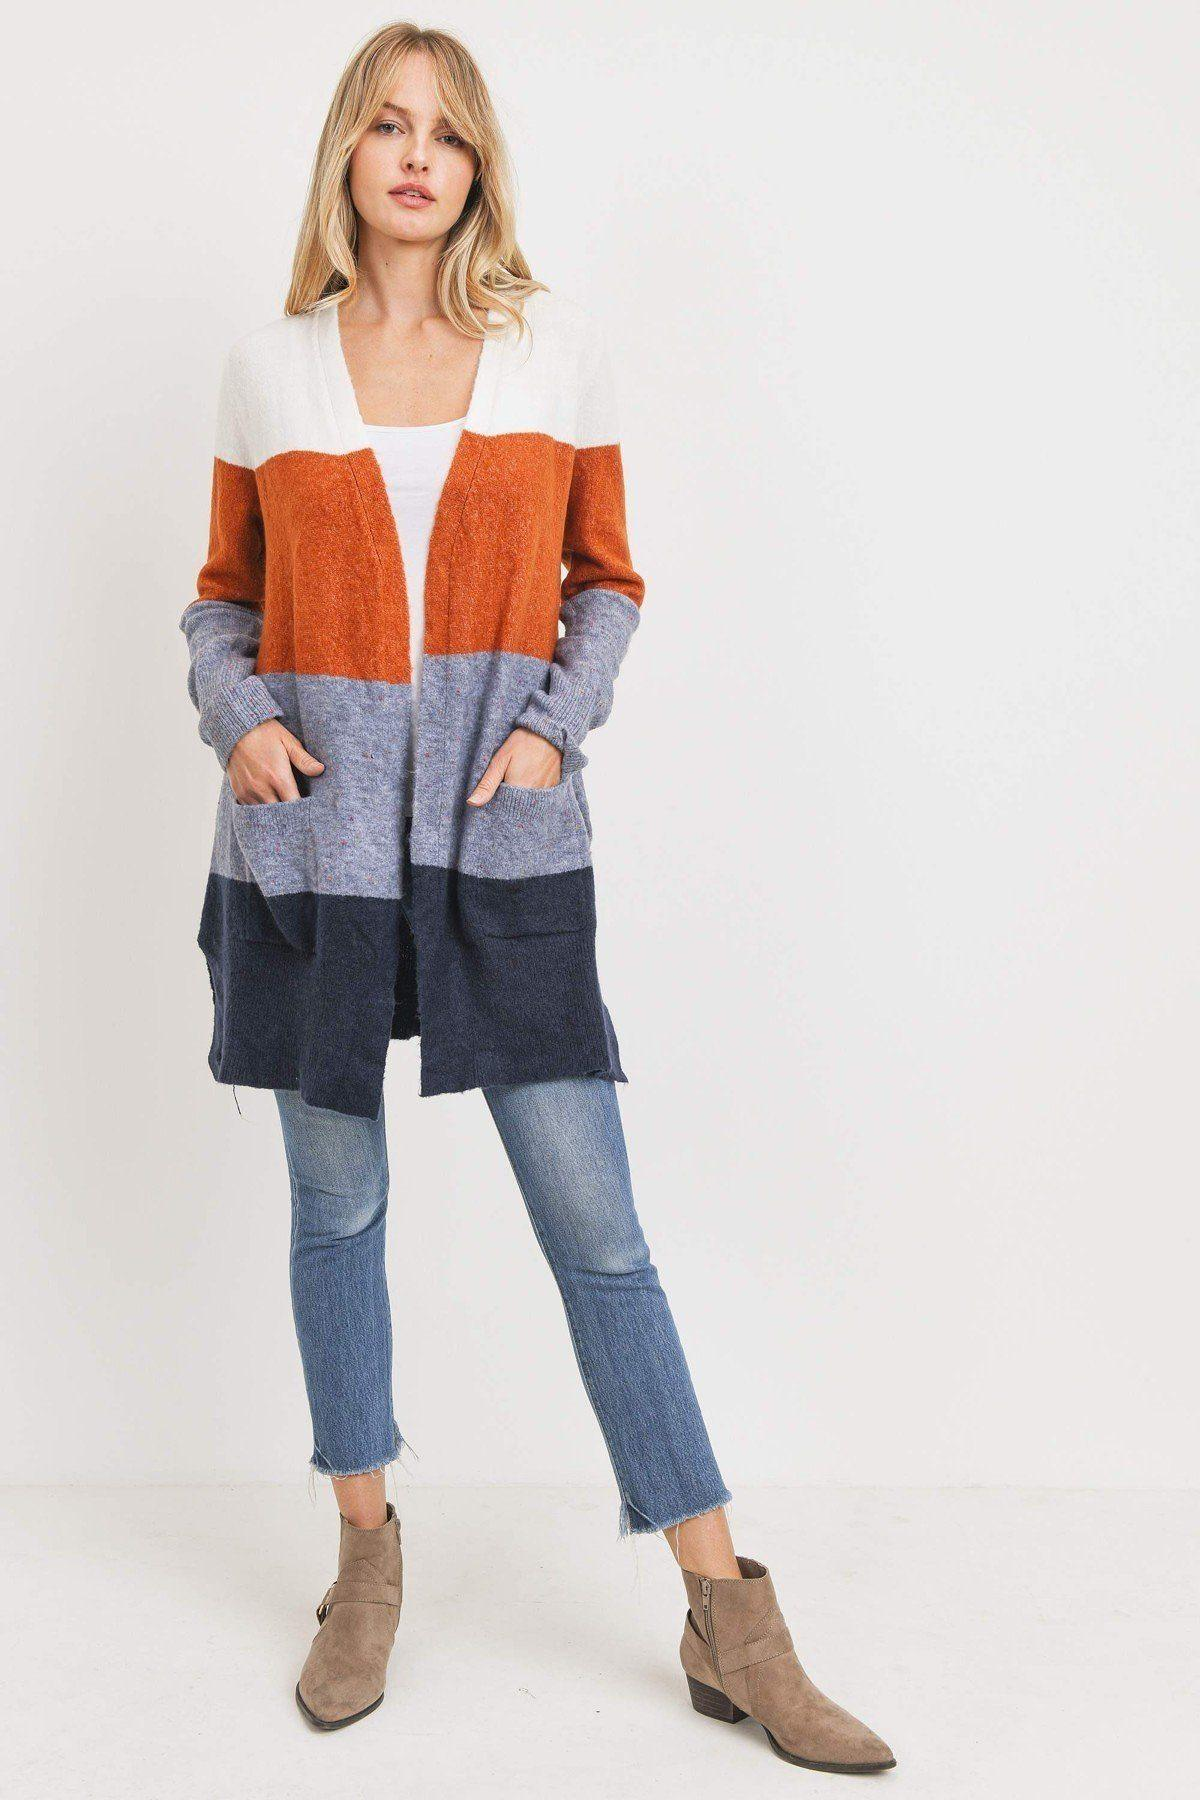 Striped Print Open Front Cardigan - Naughty Smile Fashion